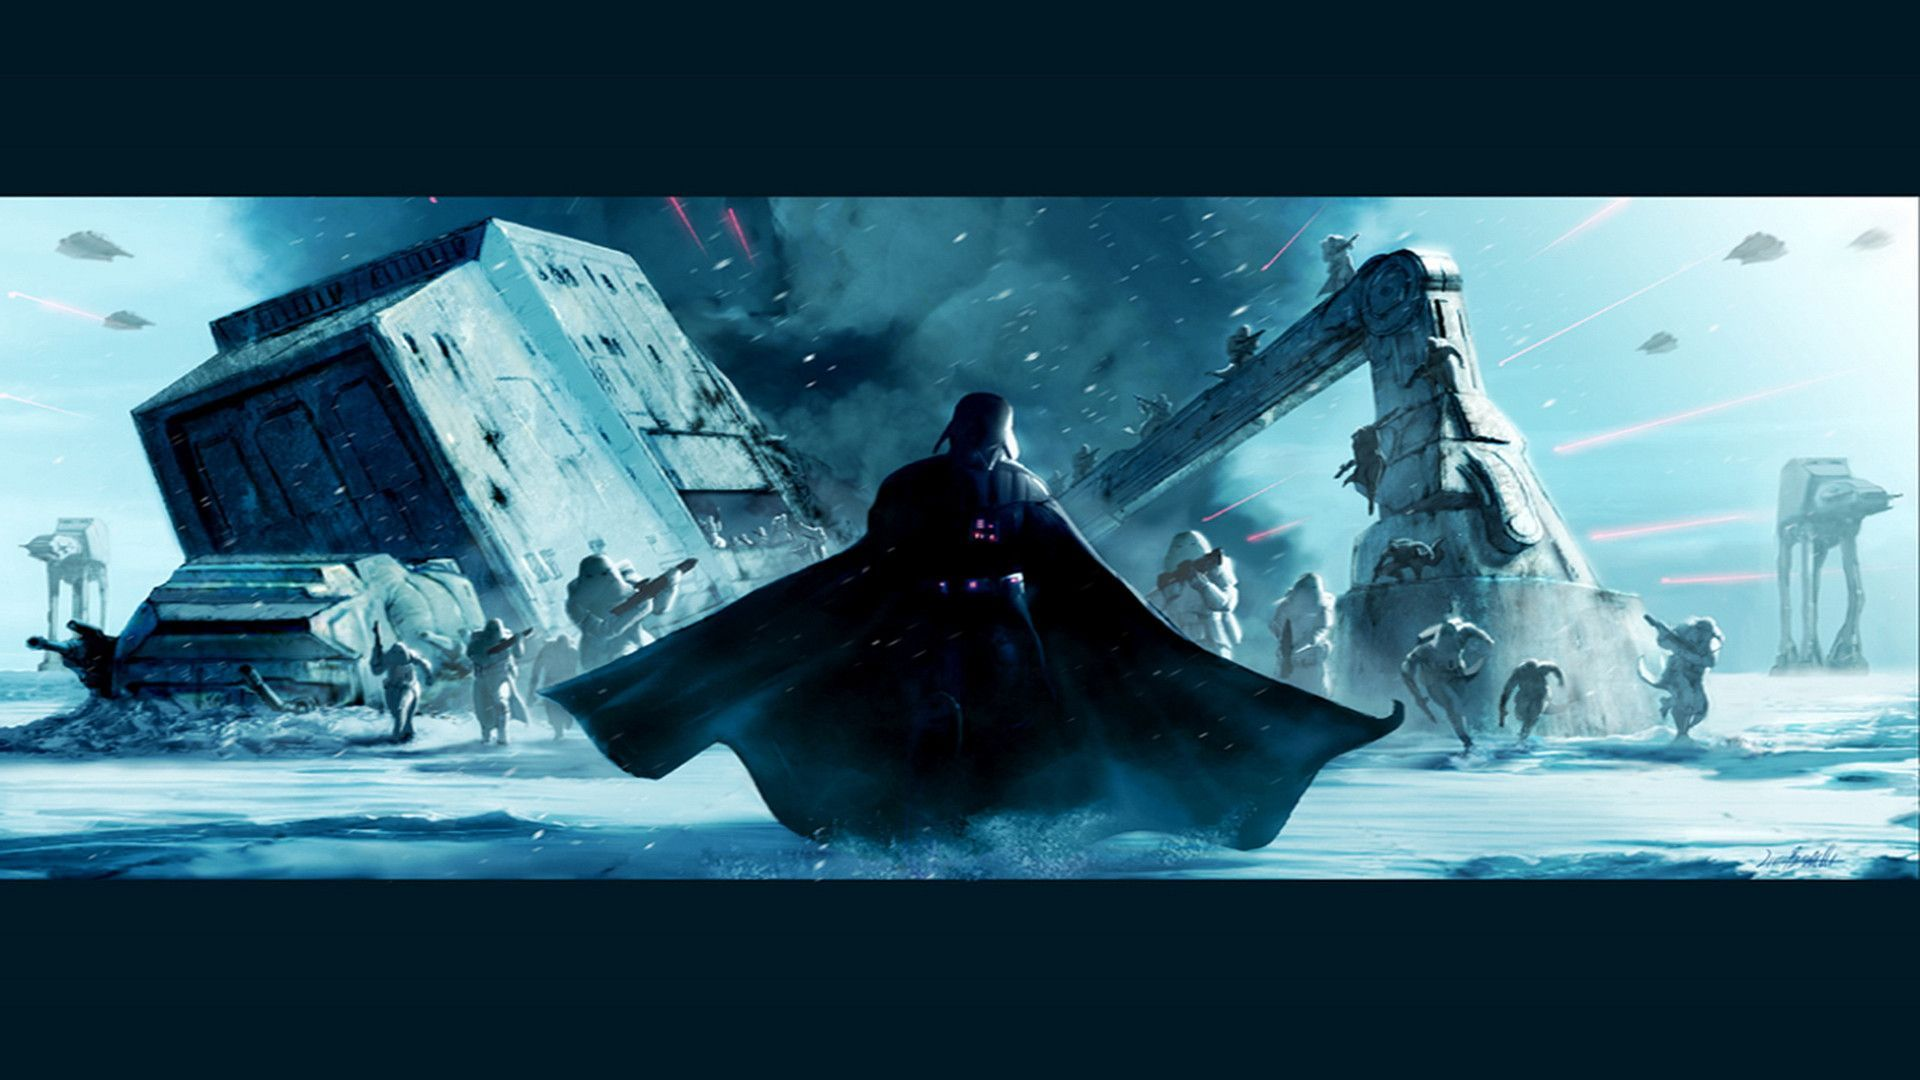 Star Wars Empire Wallpapers Top Free Star Wars Empire Backgrounds